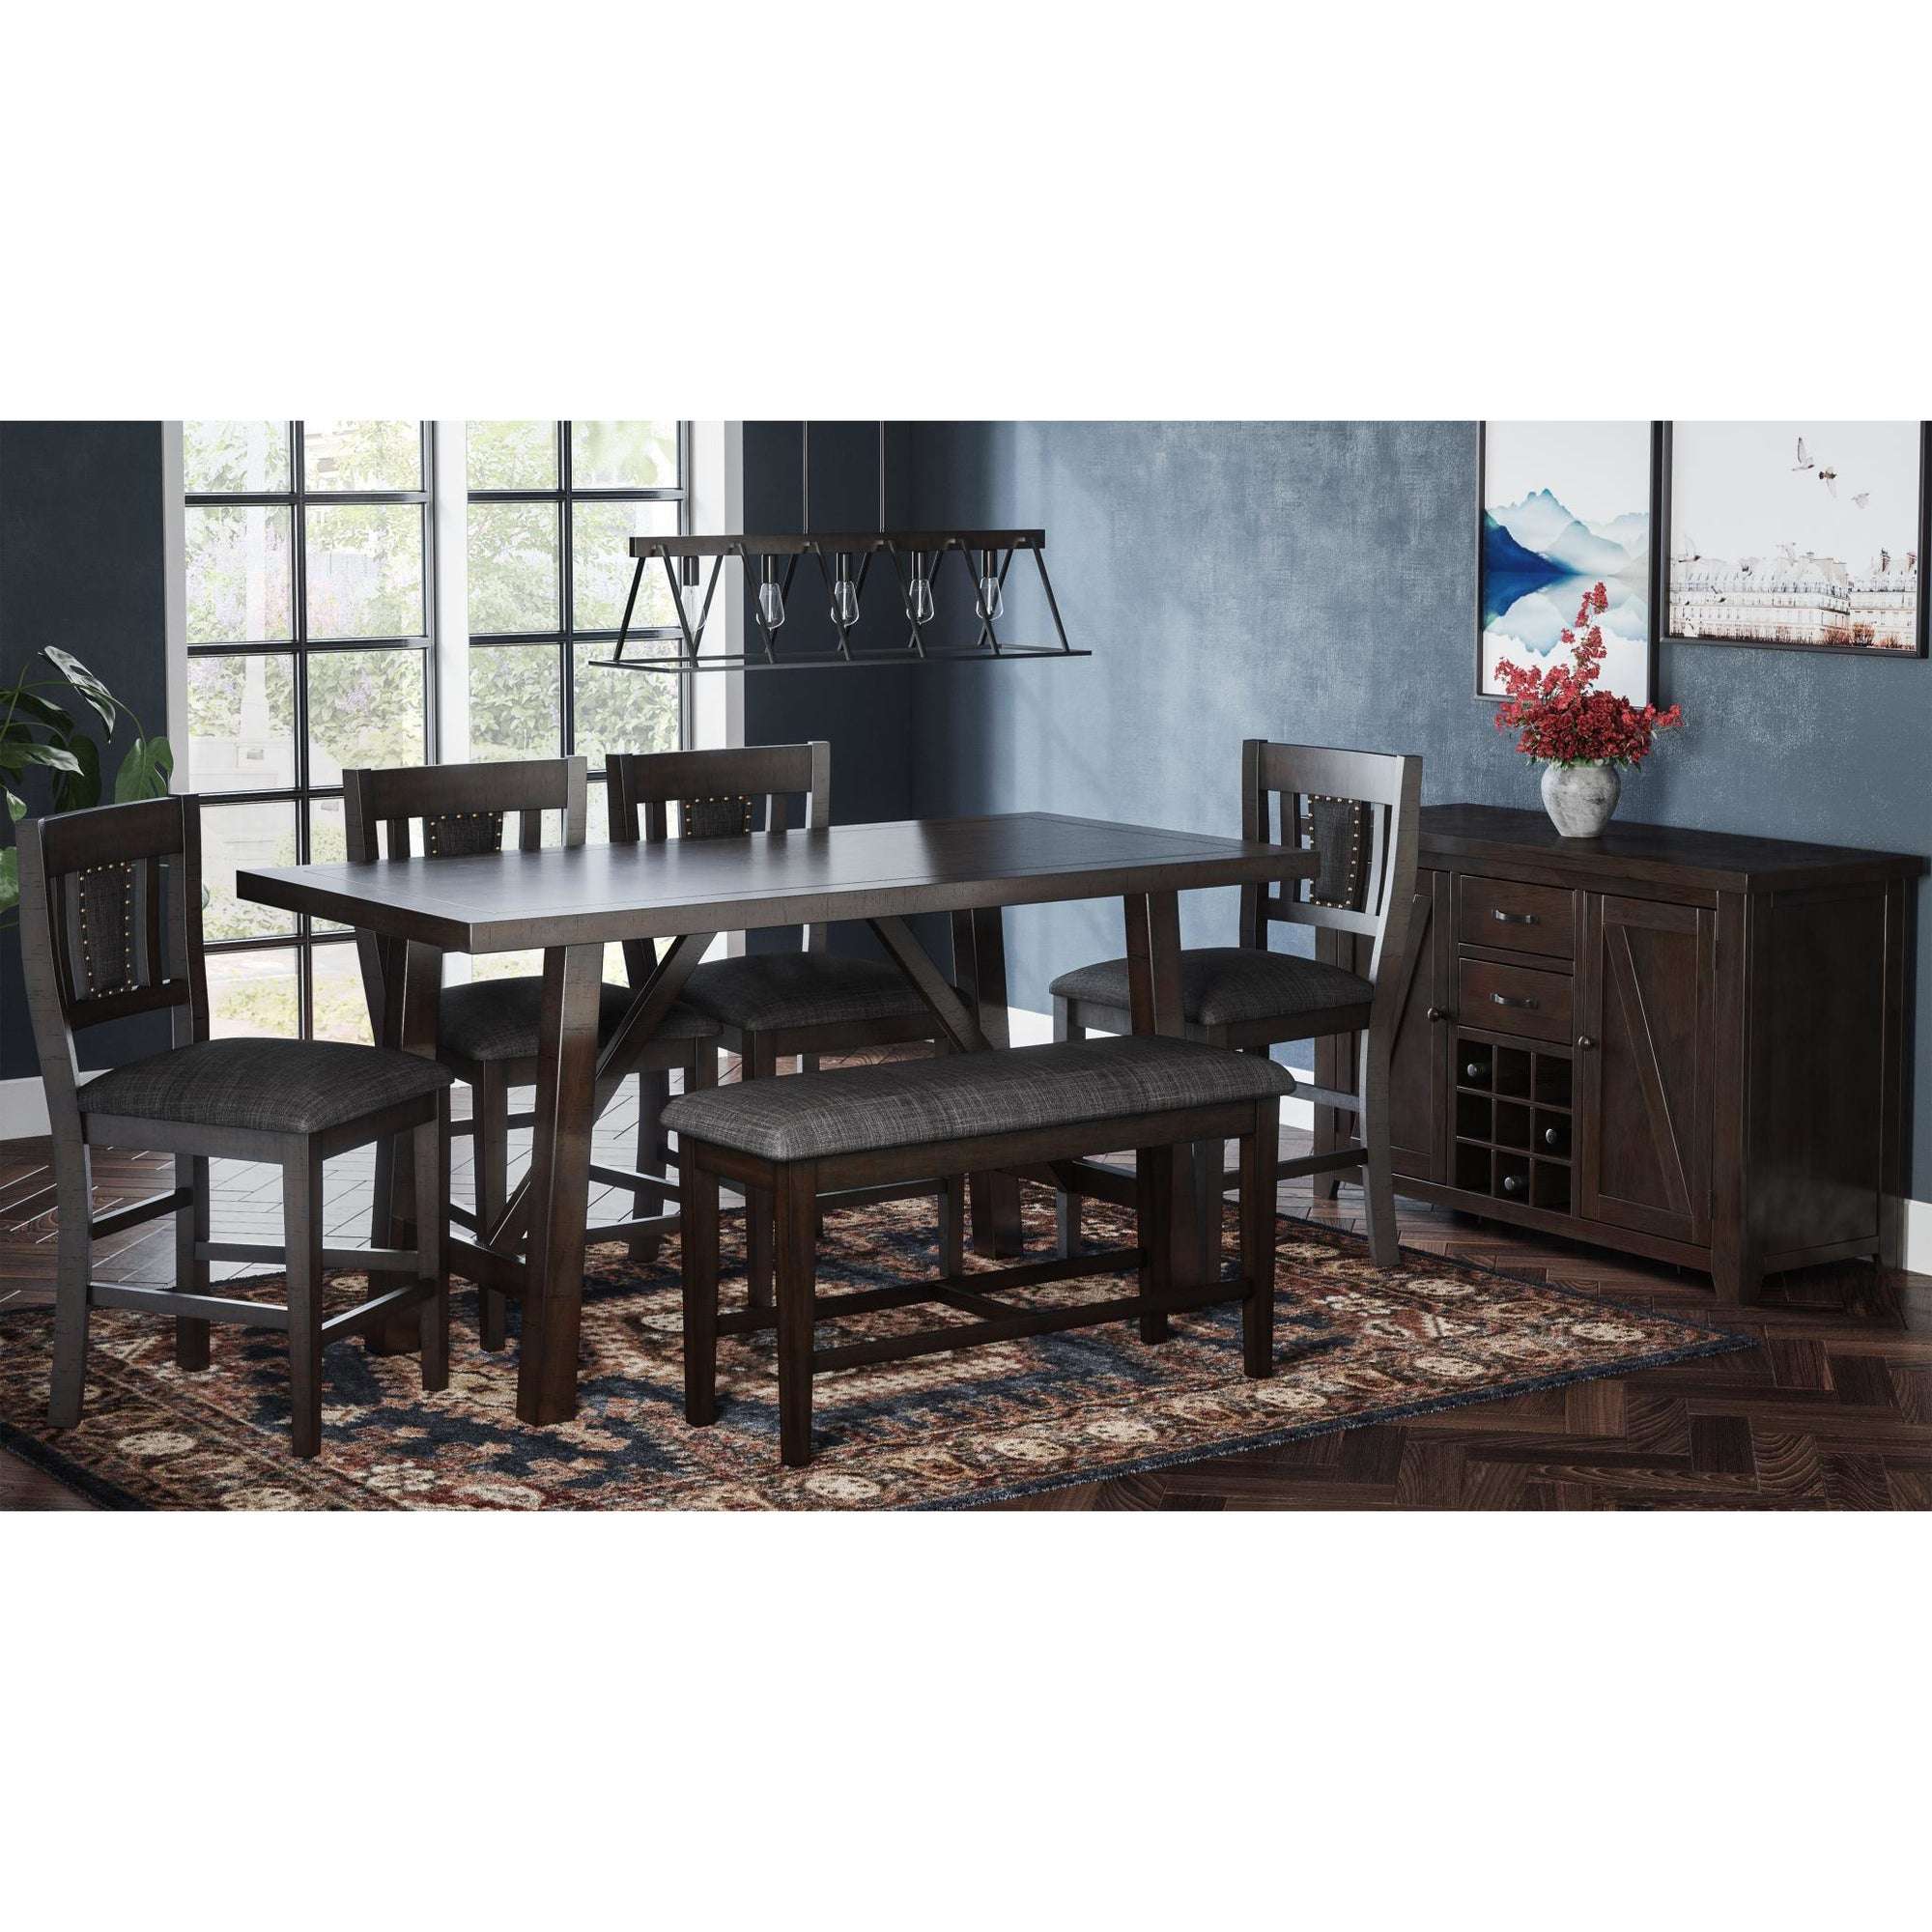 American Rustics Counter Dining Set